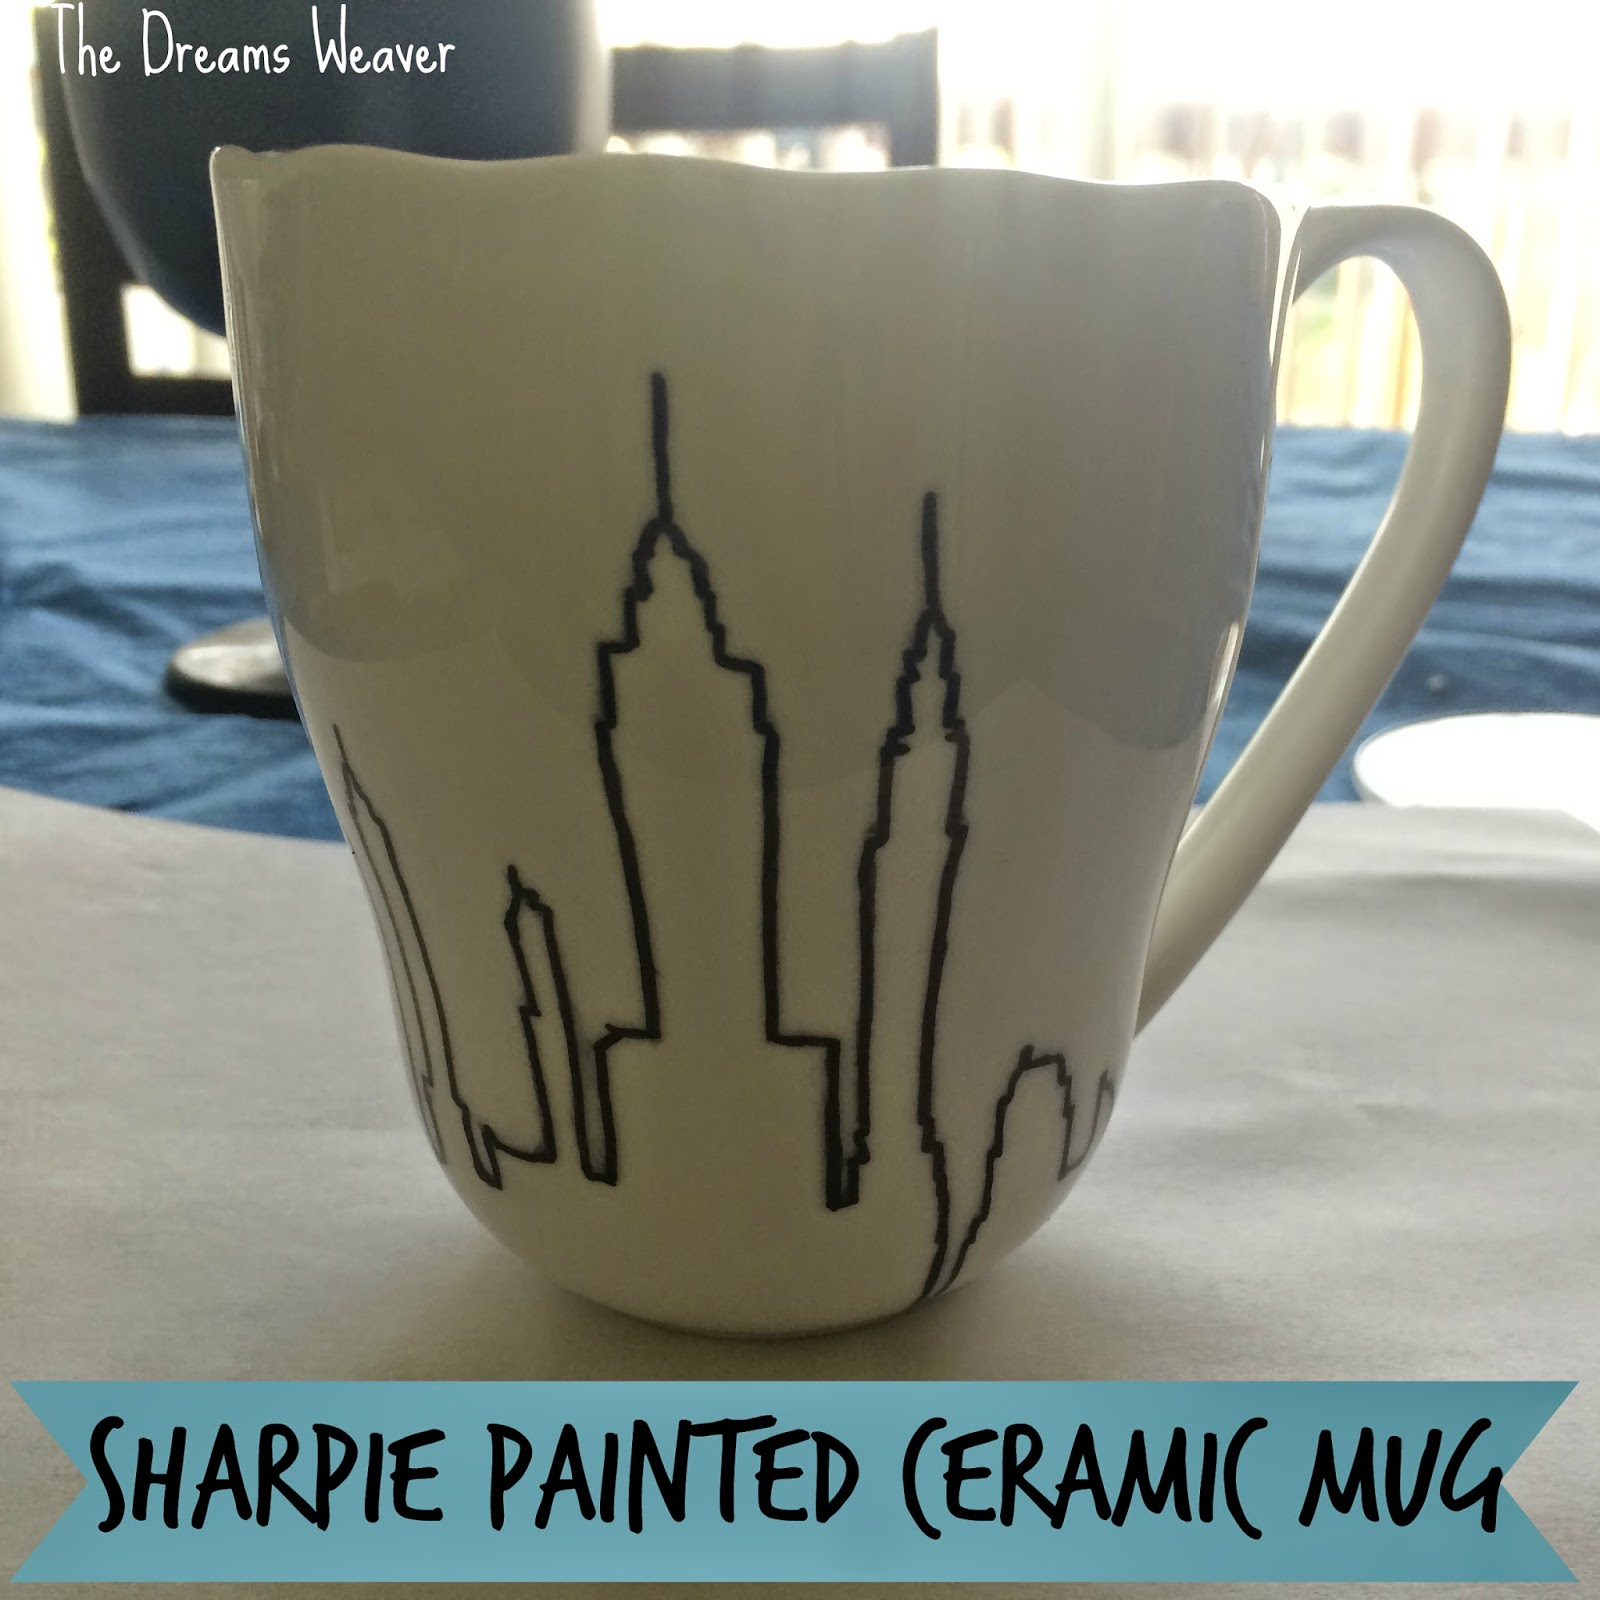 Sharpie Painted Ceramic Mug~ The Dreams Weaver